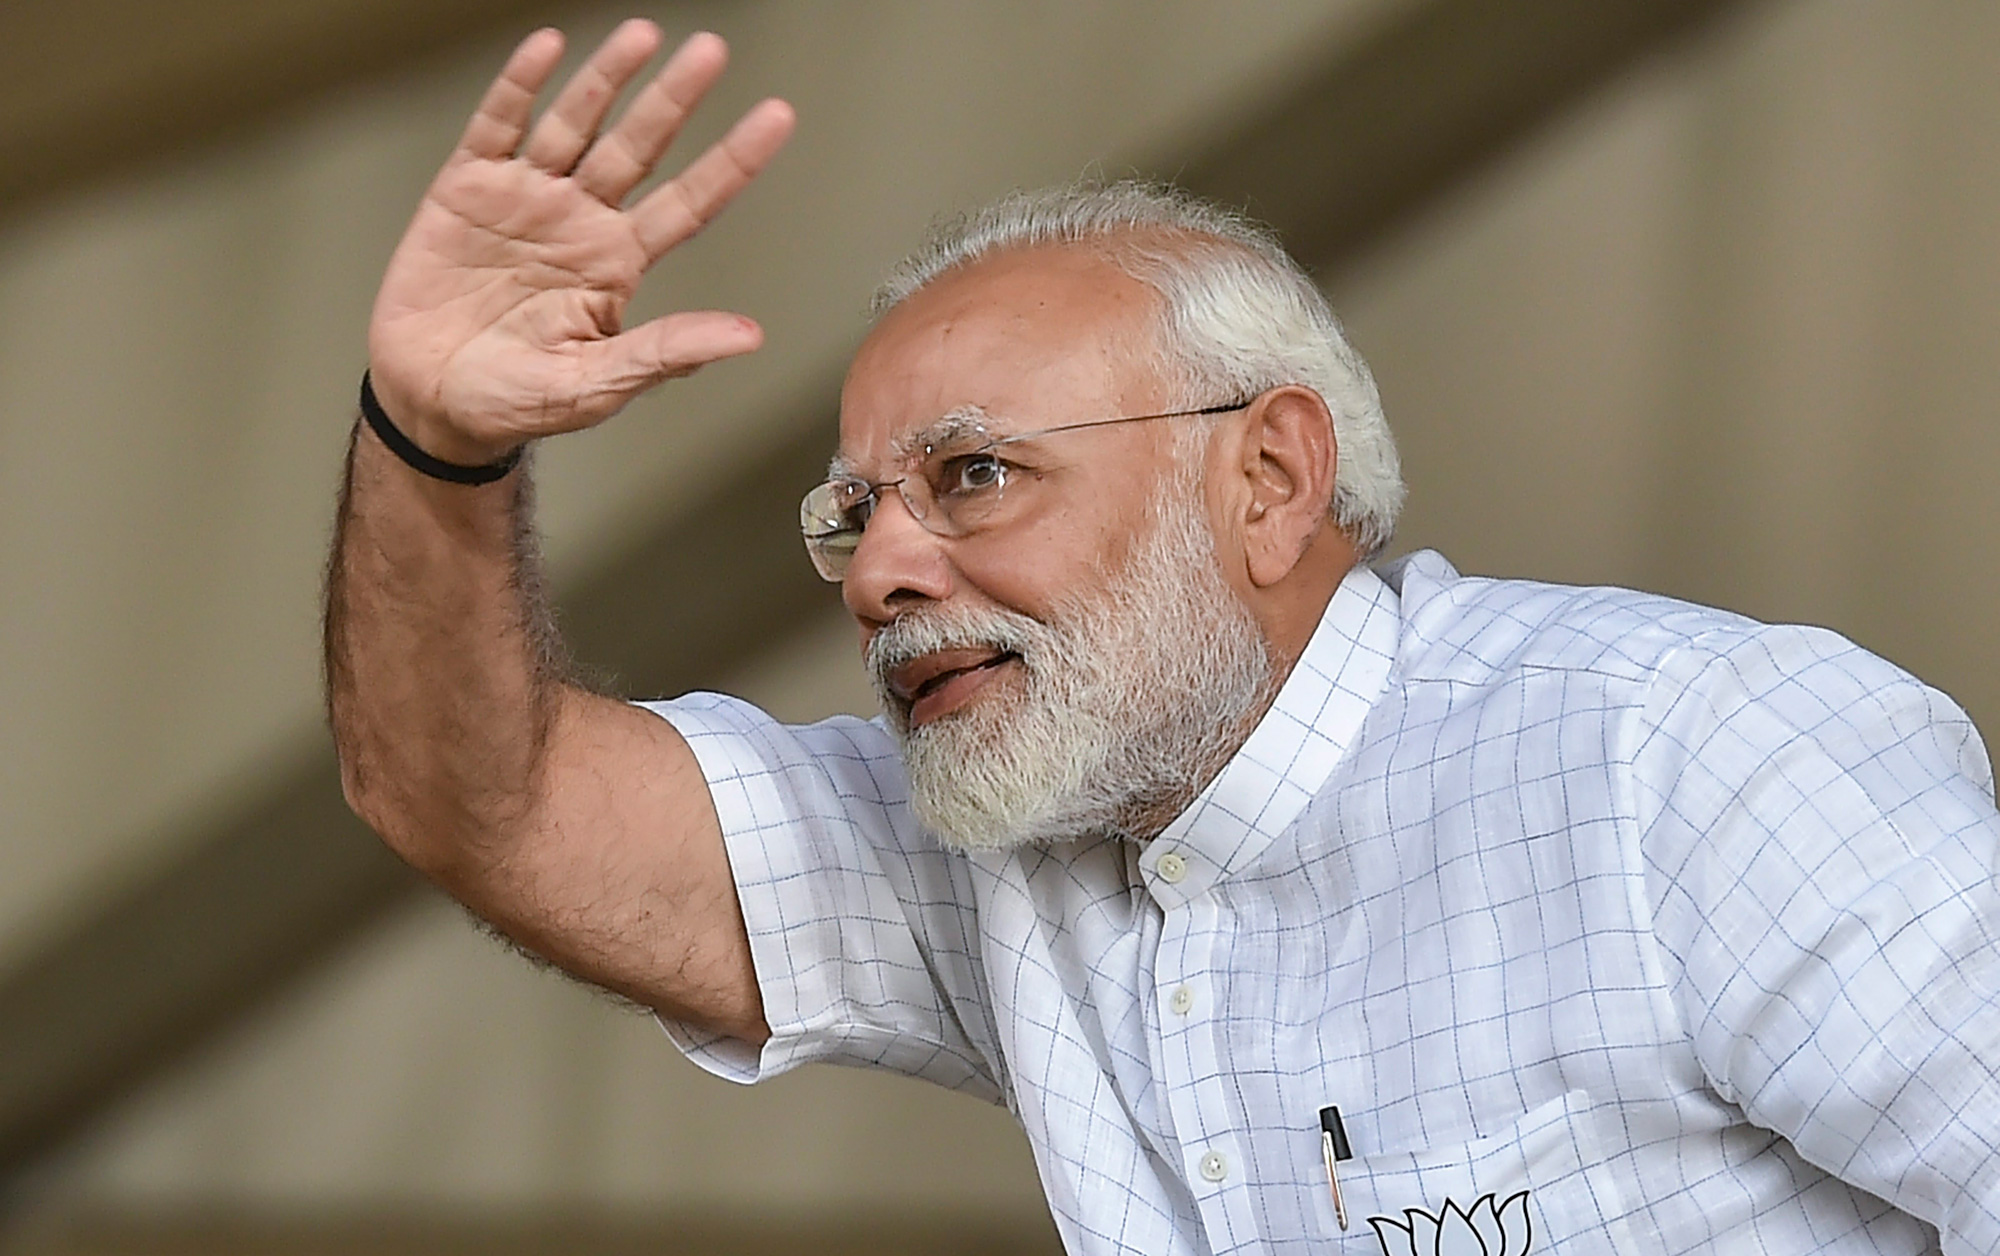 The party's politicization of Balakot was aimed at glorifying Narendra Modi and his government.